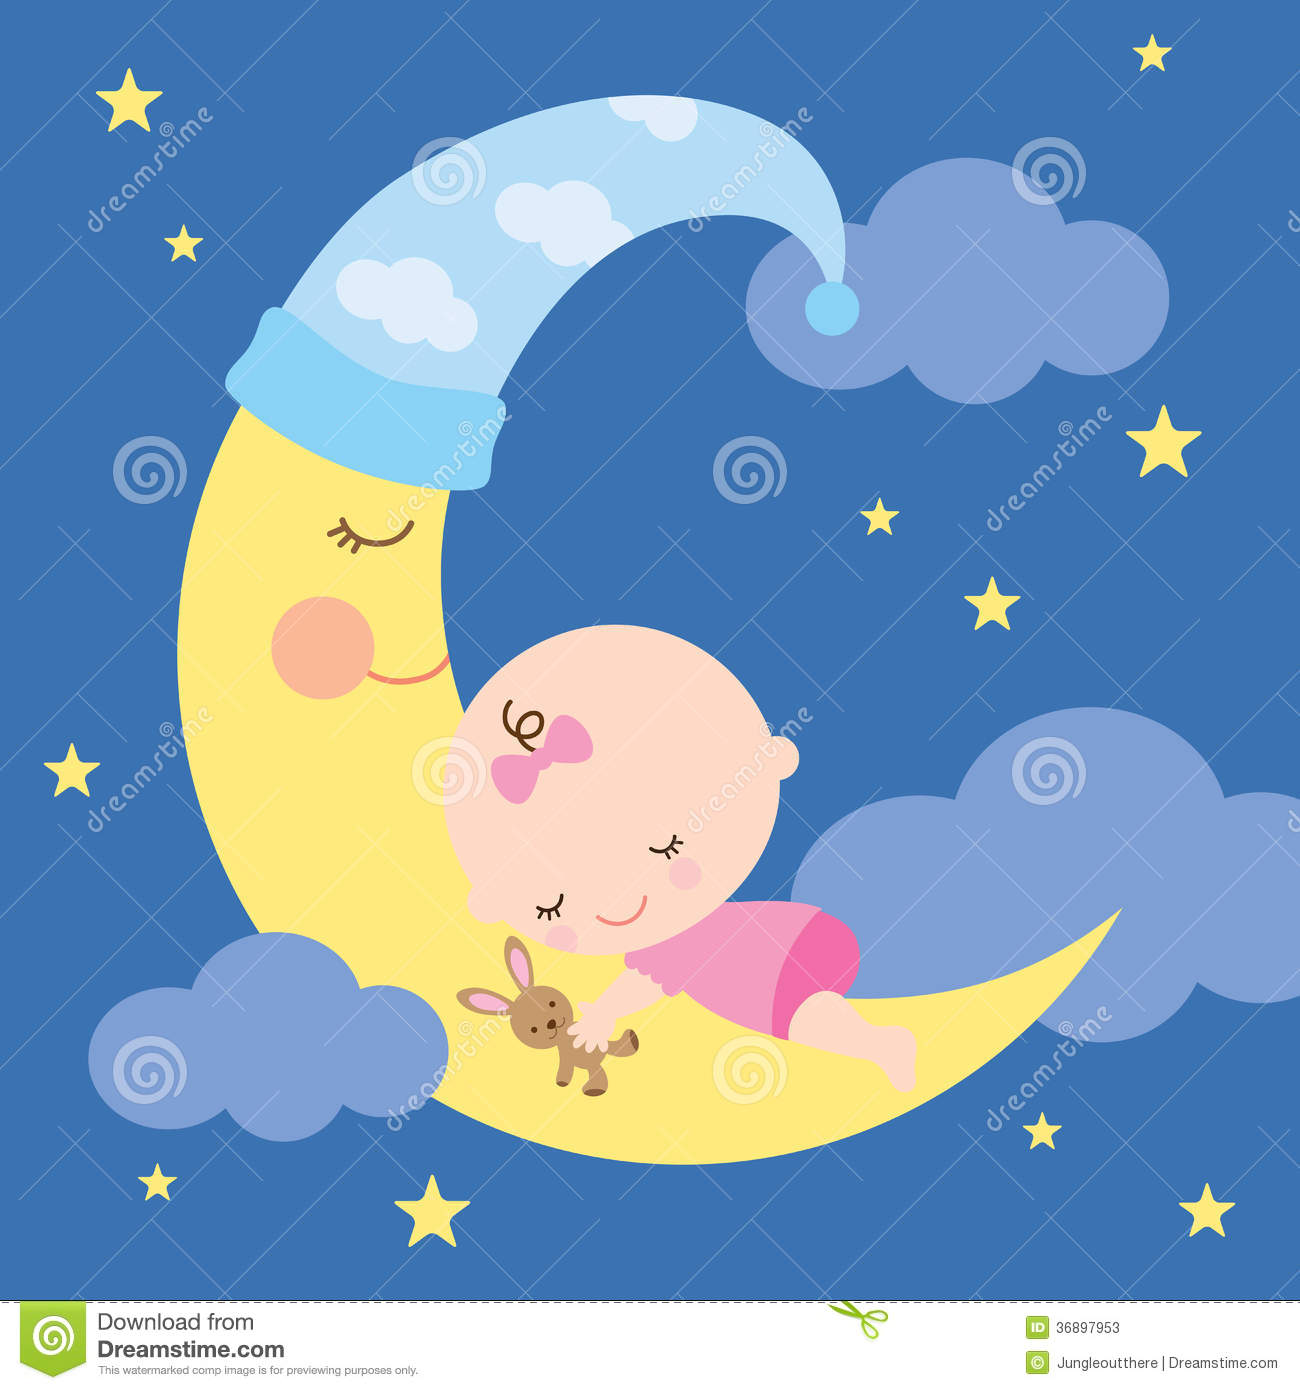 Moon clipart dormir Moon sleeping Search Search Crafts